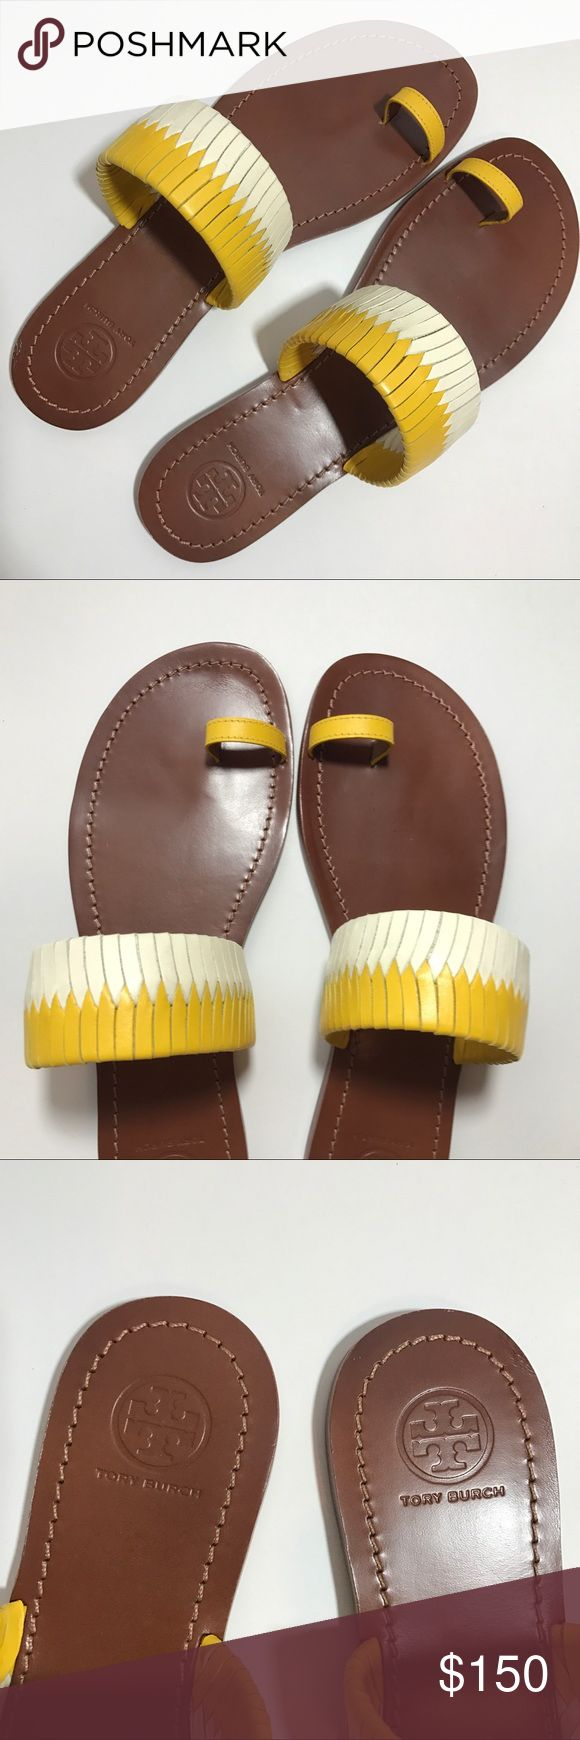 NWT TORY BURCH - Woven Flat Slide Sandals Brand new without box Tory Burch flat toe ring slide sandals with woven detailing in yellow and white. Timeless summer silhouette constructed of nappa leather upper, leather lining, and rubber sole. Made in Brazil. Open toe, slip on, contrast woven band. Perfect for these warm summer days! Tory Burch Shoes Sandals